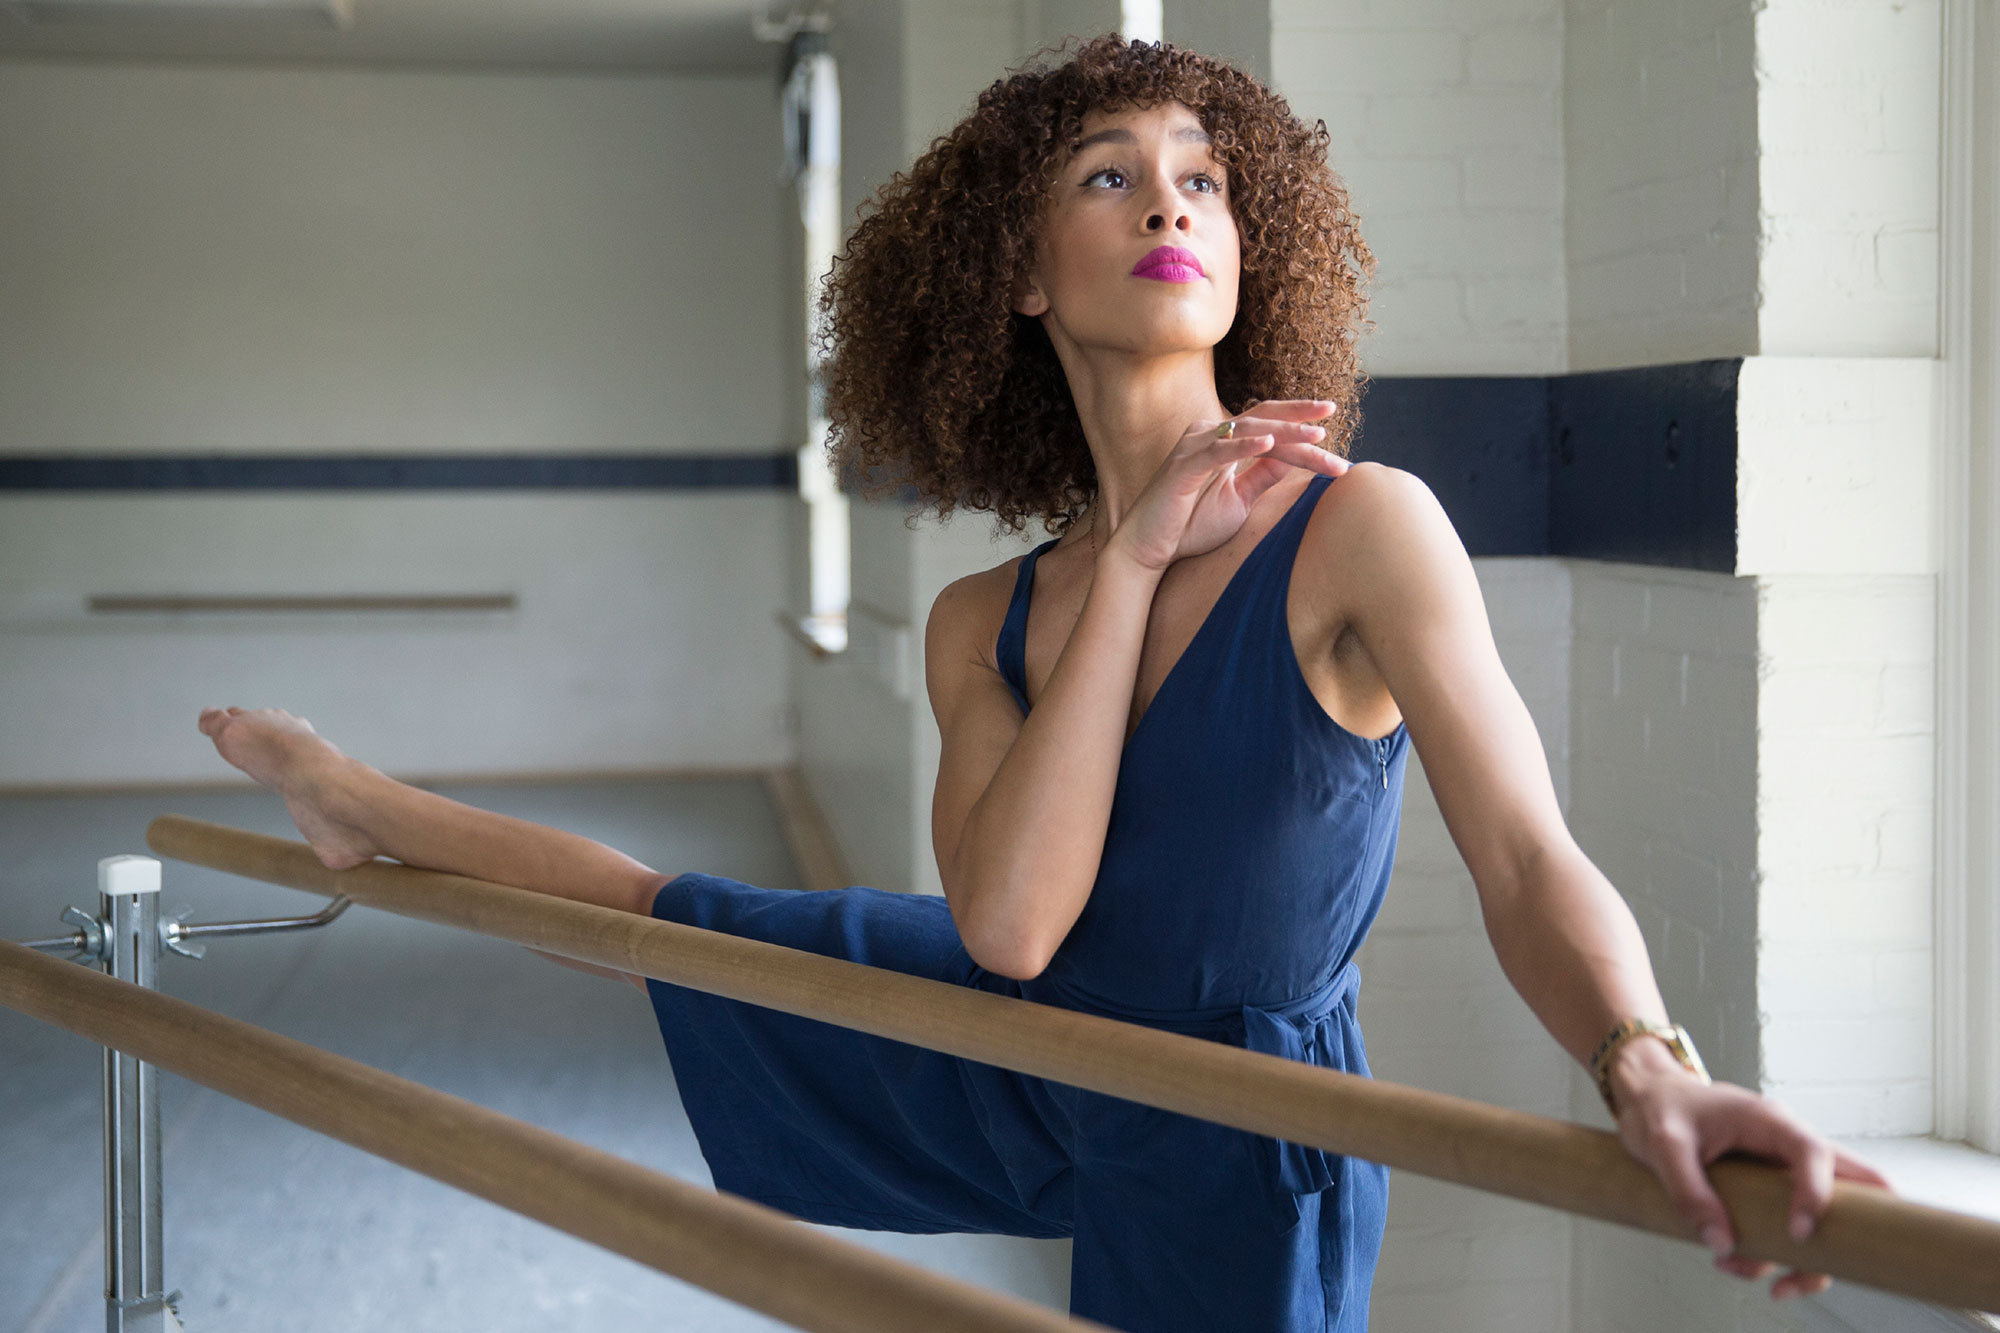 Russell, who began dancing at the age of 8, is trained in both ballet and modern dance.